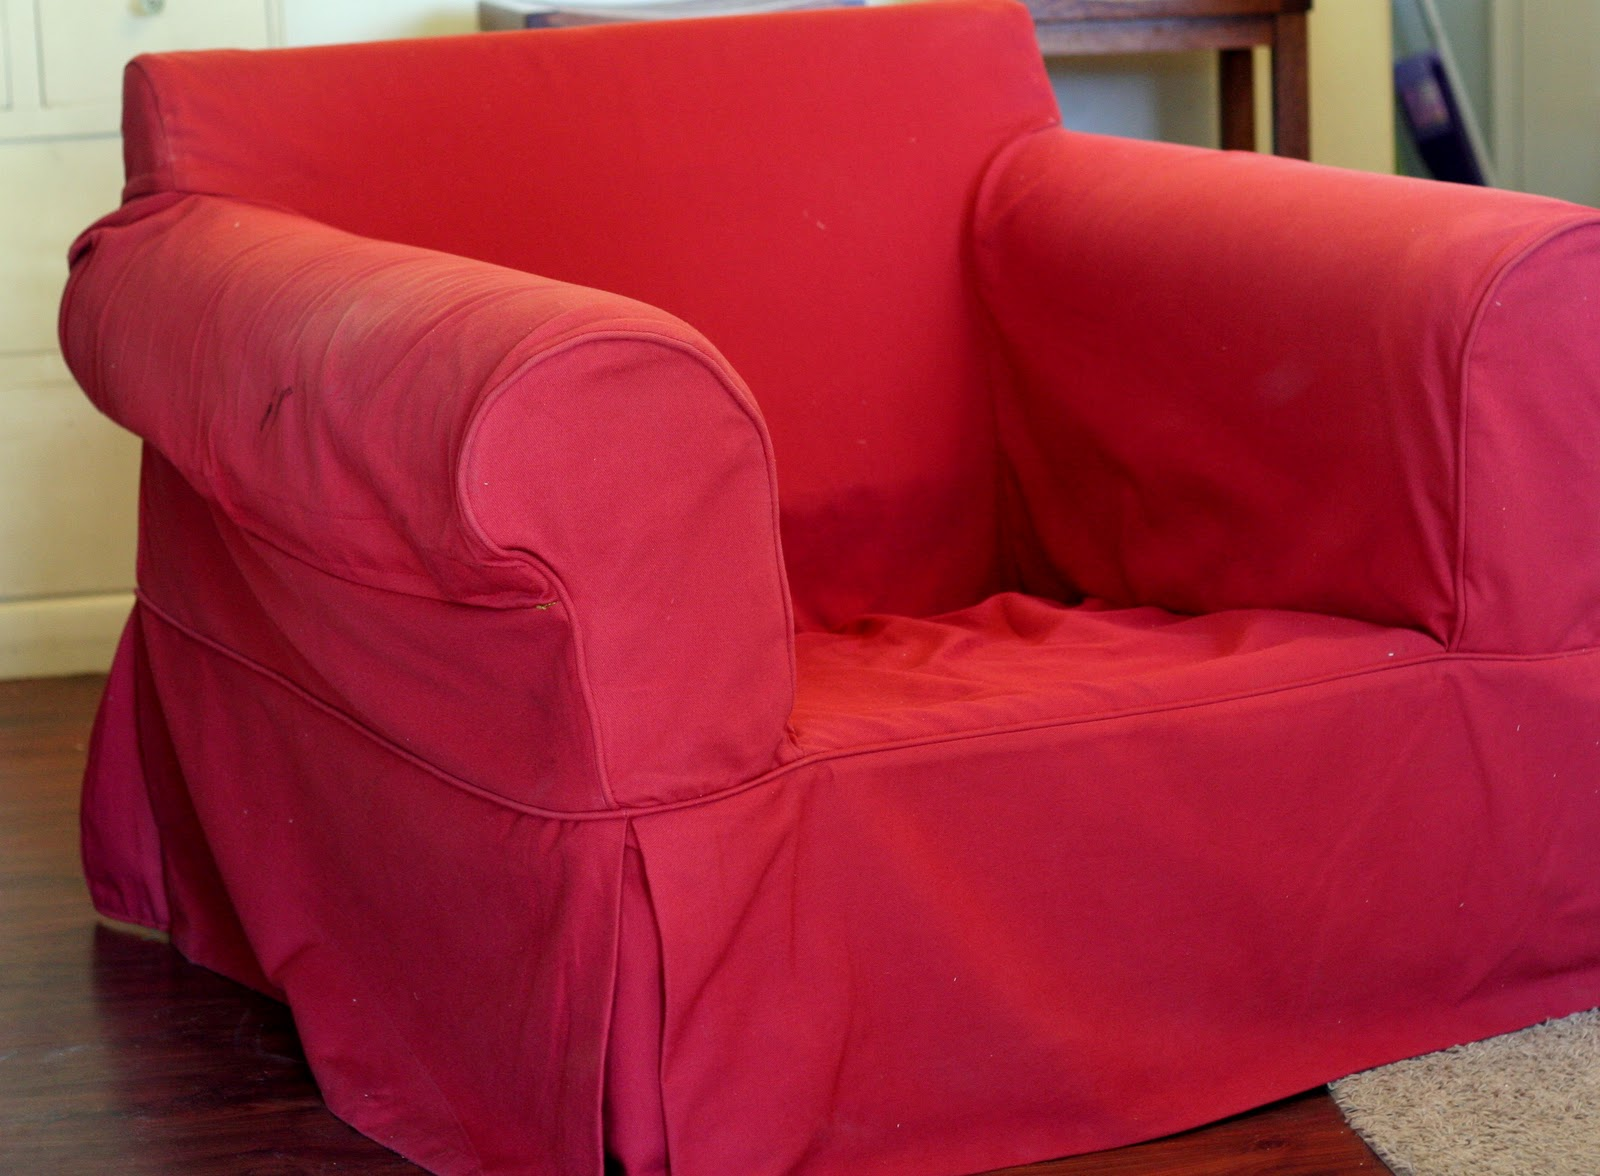 Custom slipcovers by shelley gray oval oversized chair for Oversized armchair